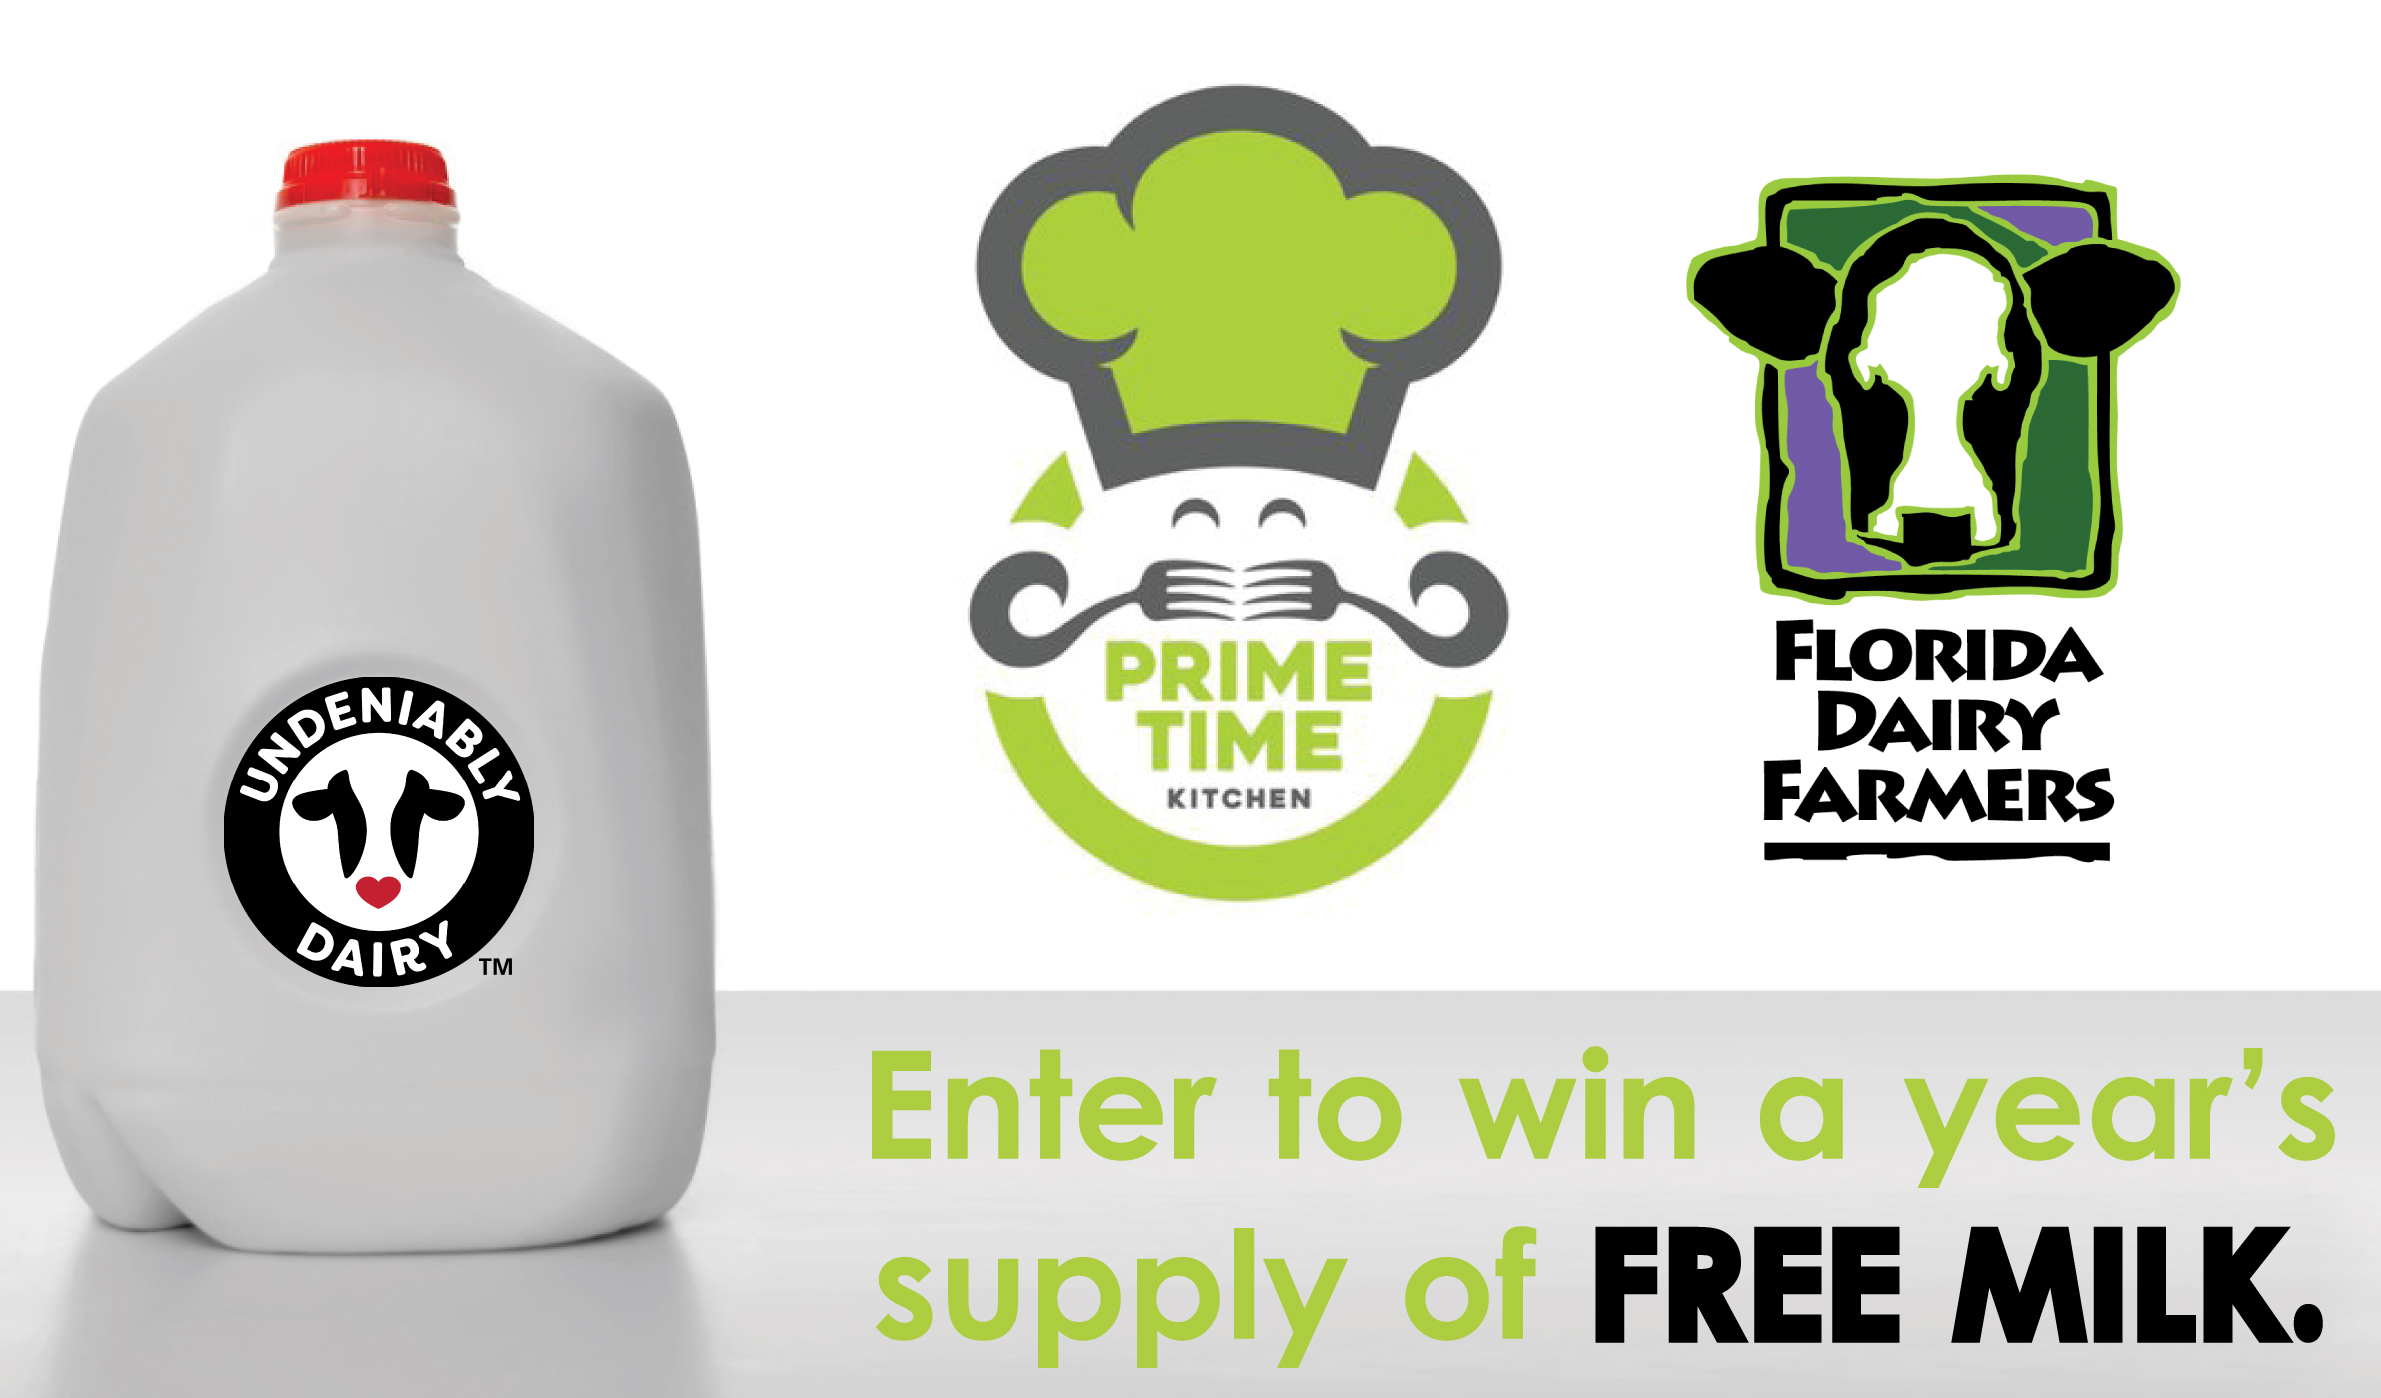 Enter to Win a Year's Supply of Free Milk